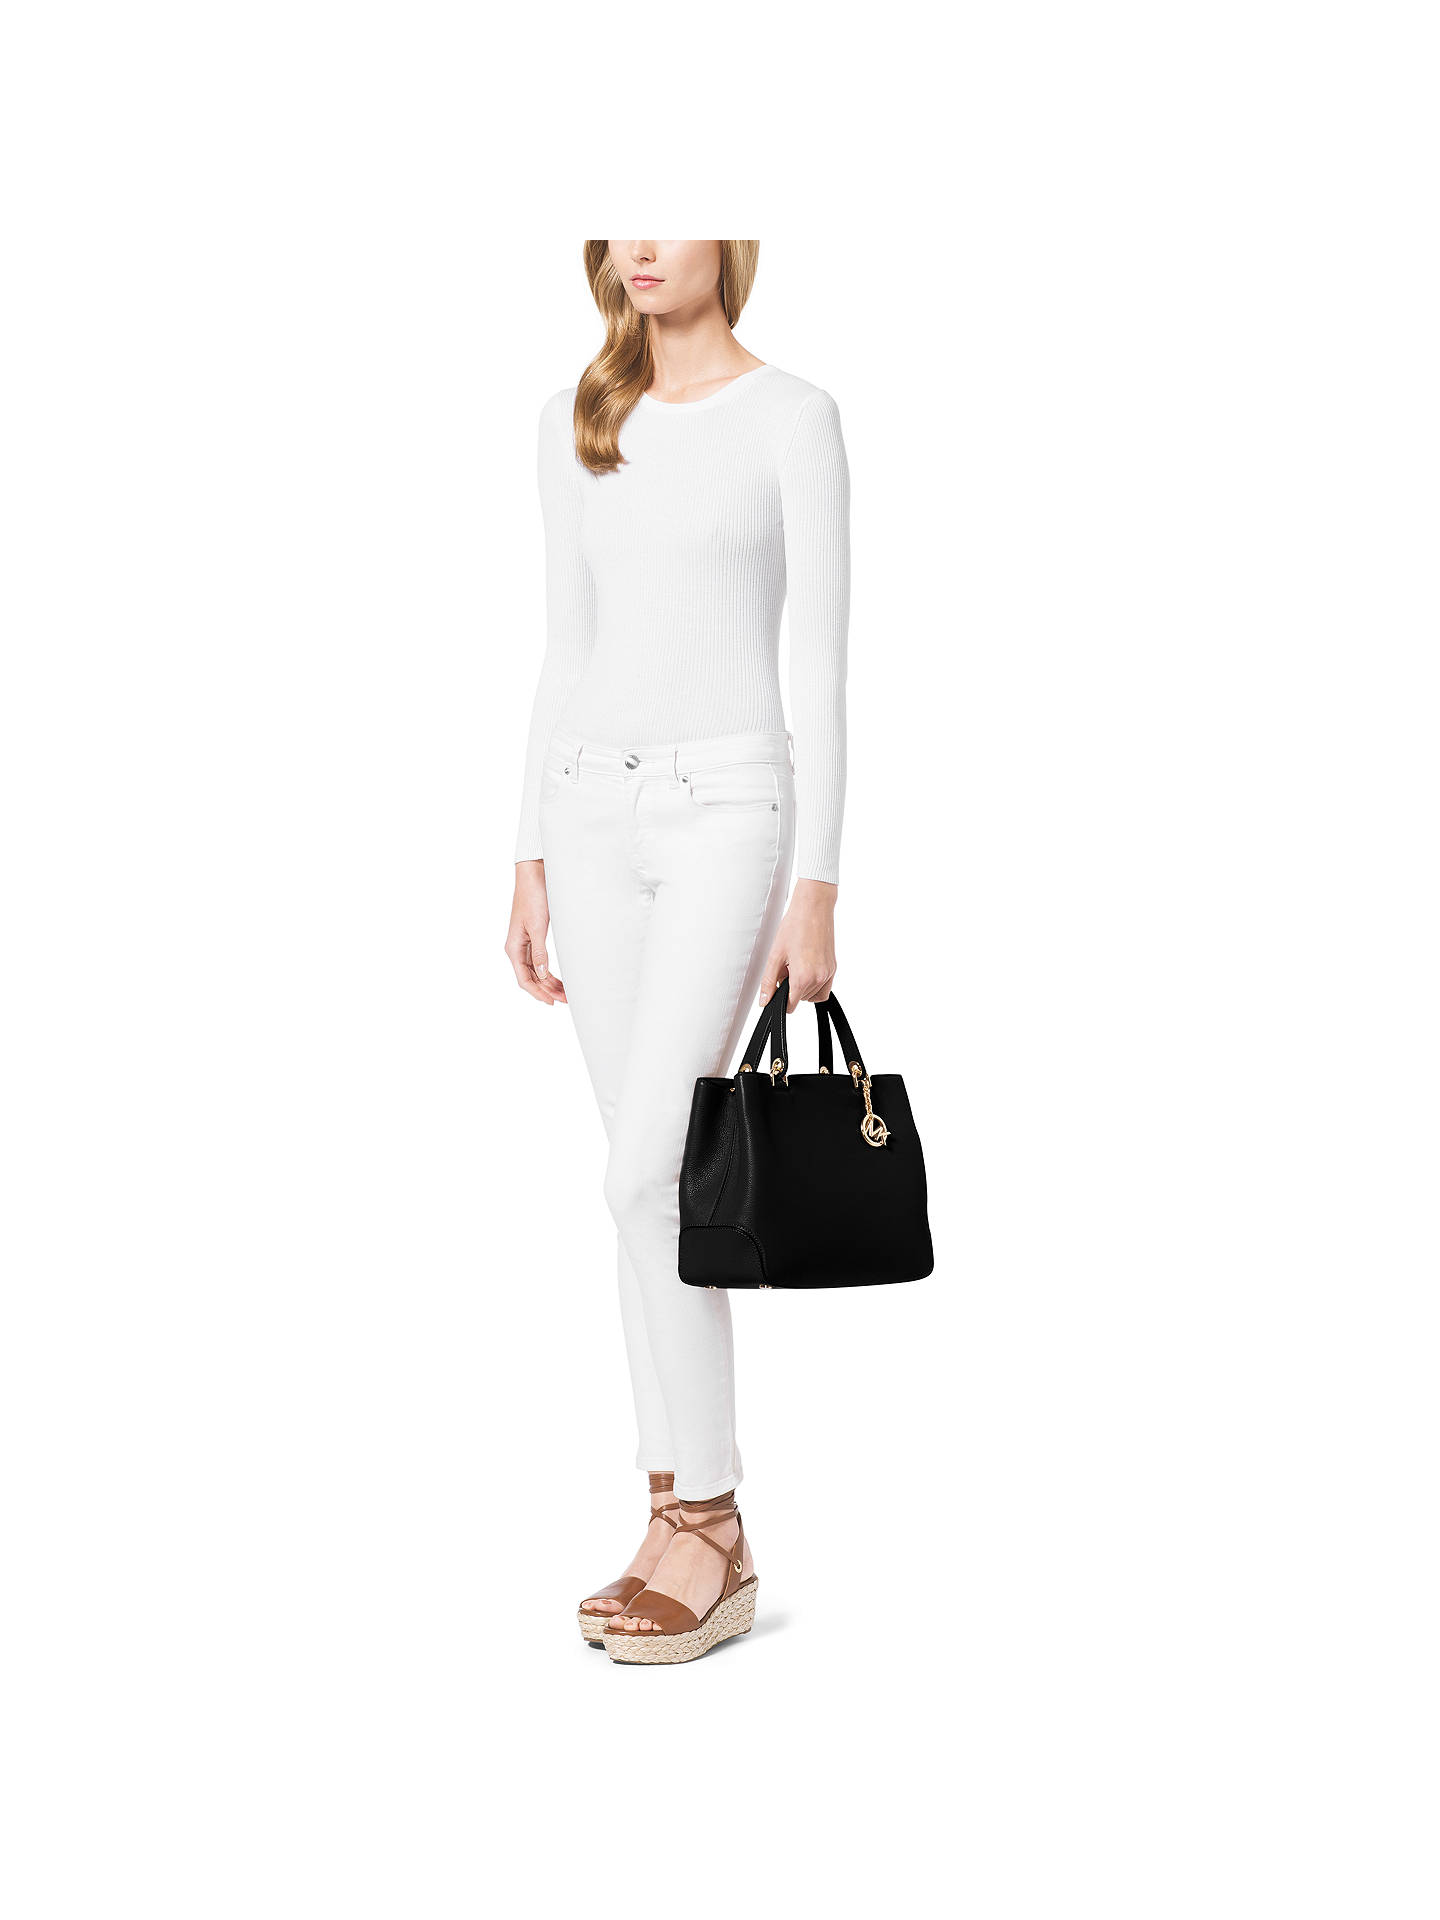 0758a2647594 ... Buy MICHAEL Michael Kors Anabelle Large Top Zip Leather Tote Bag, Black  Online at johnlewis